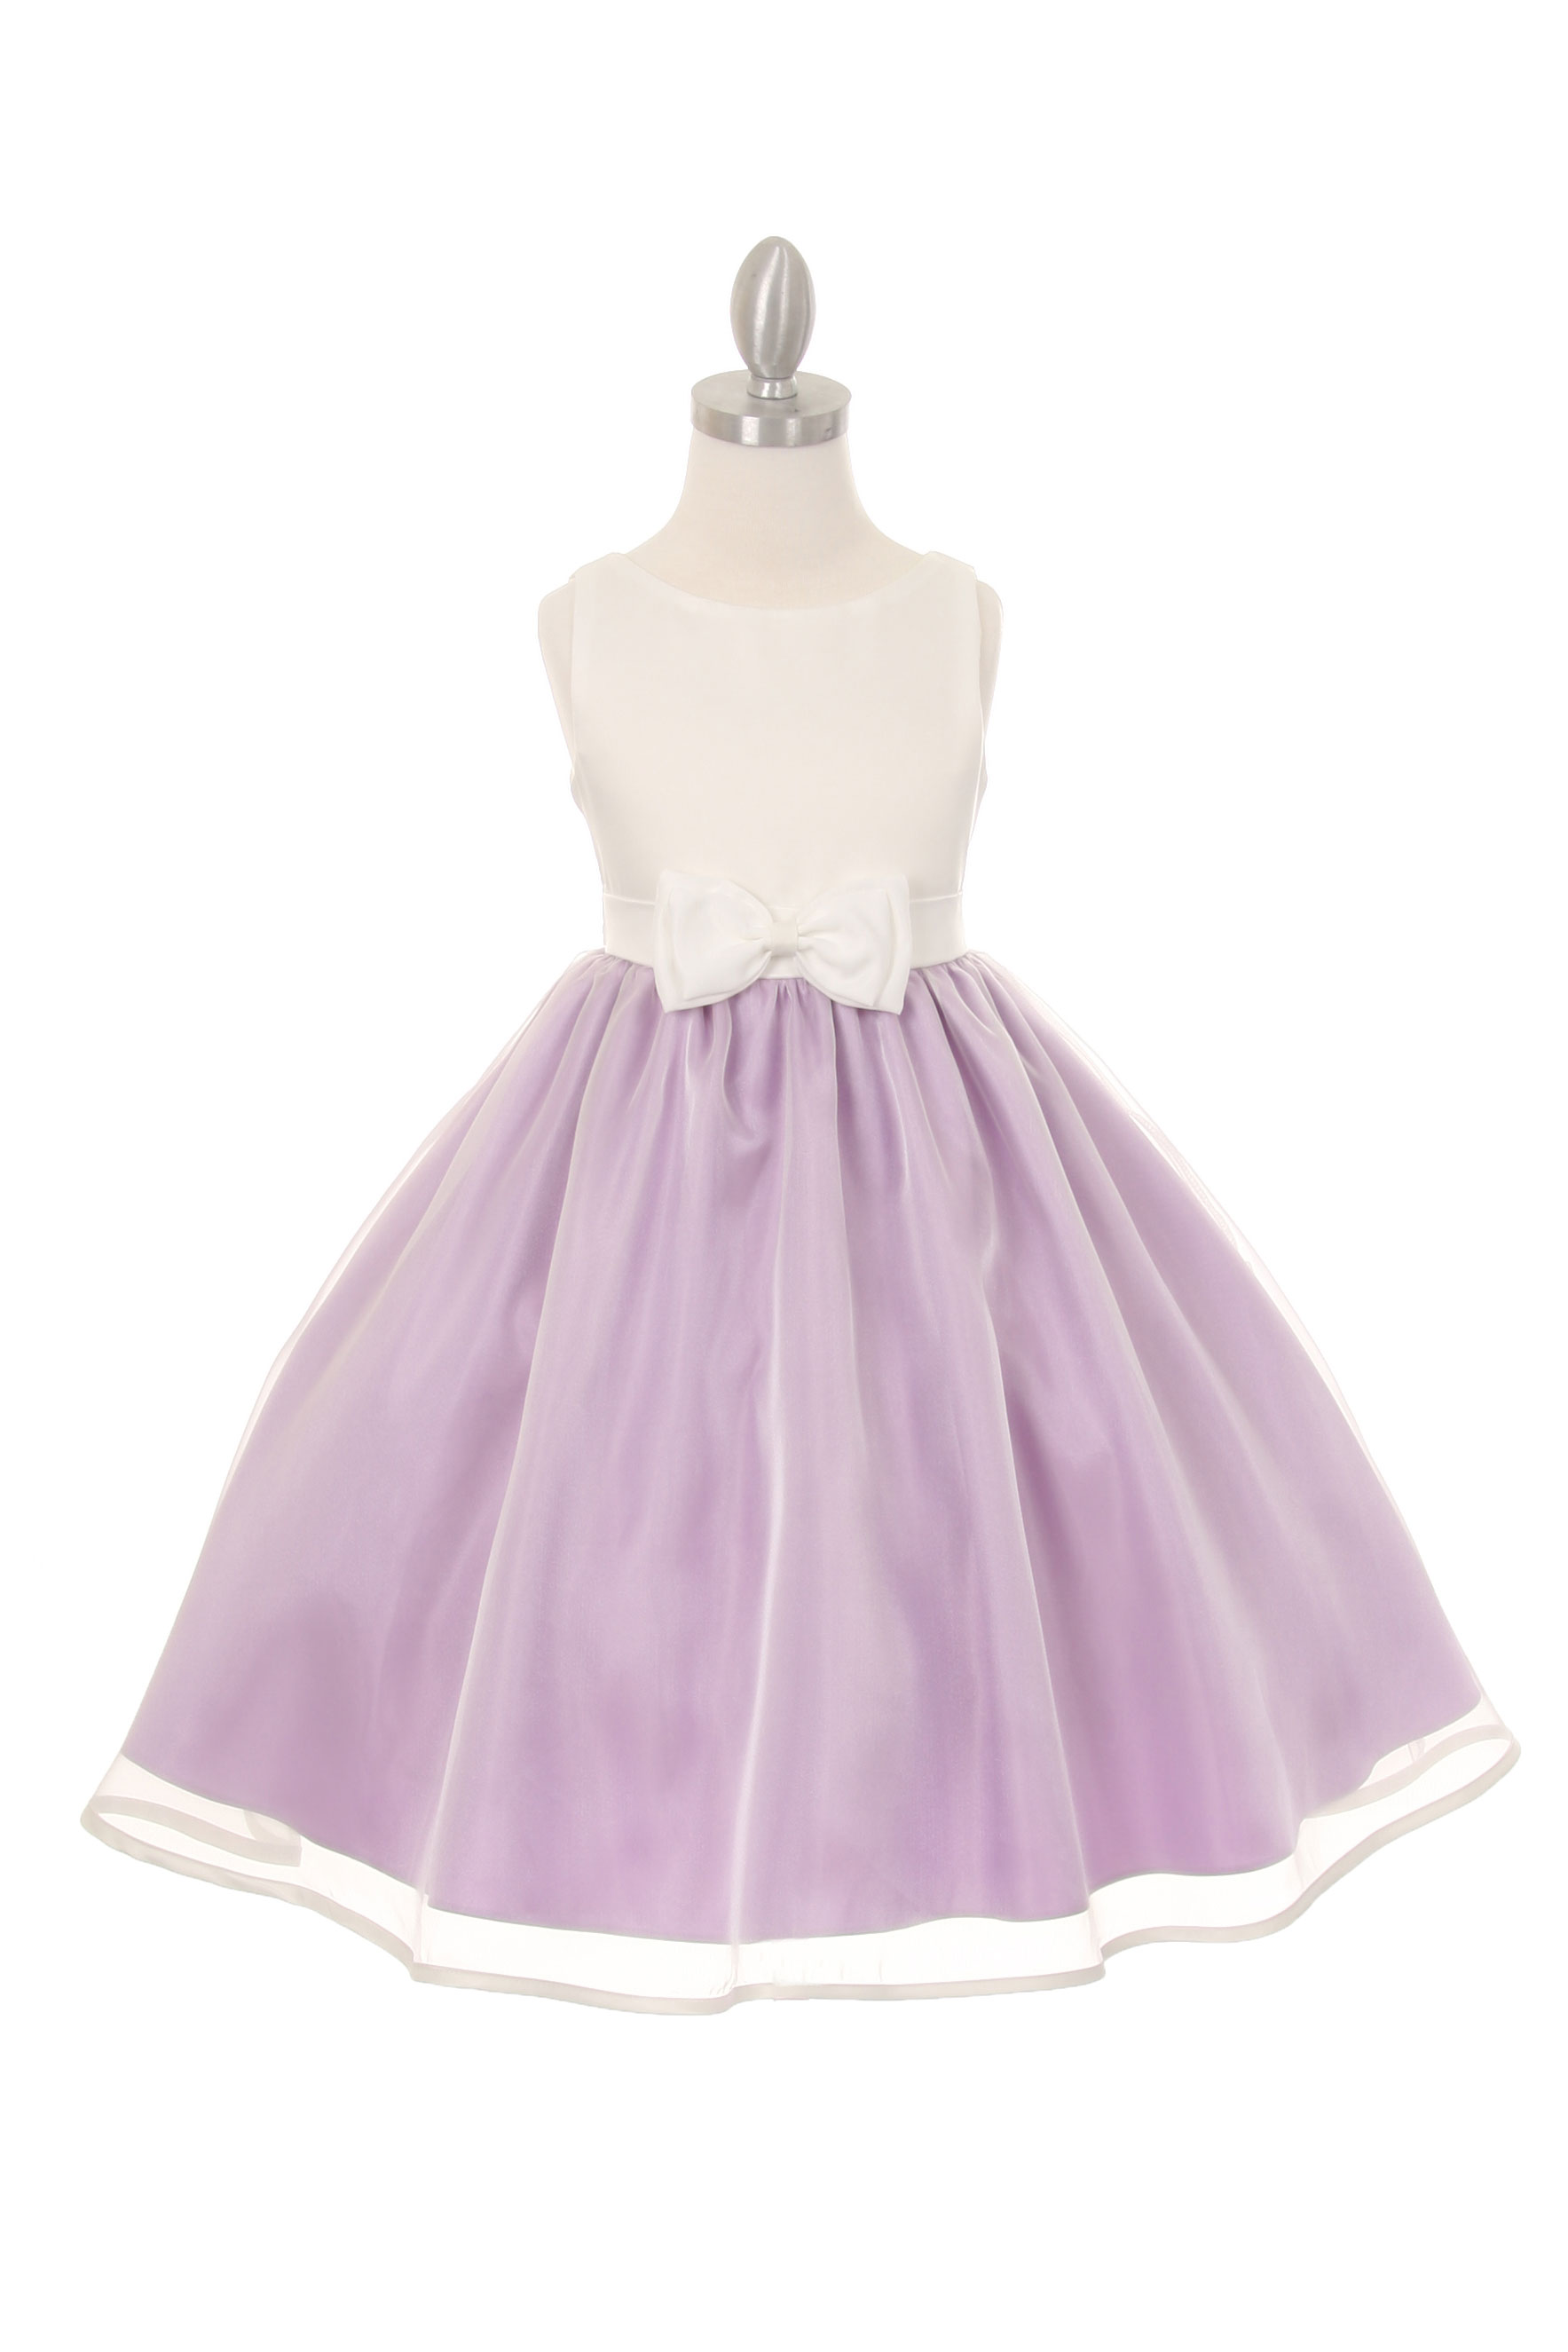 CC 1182IVL Girls Dress Style 1182 Sleeveless Organza Dress with Front Bow